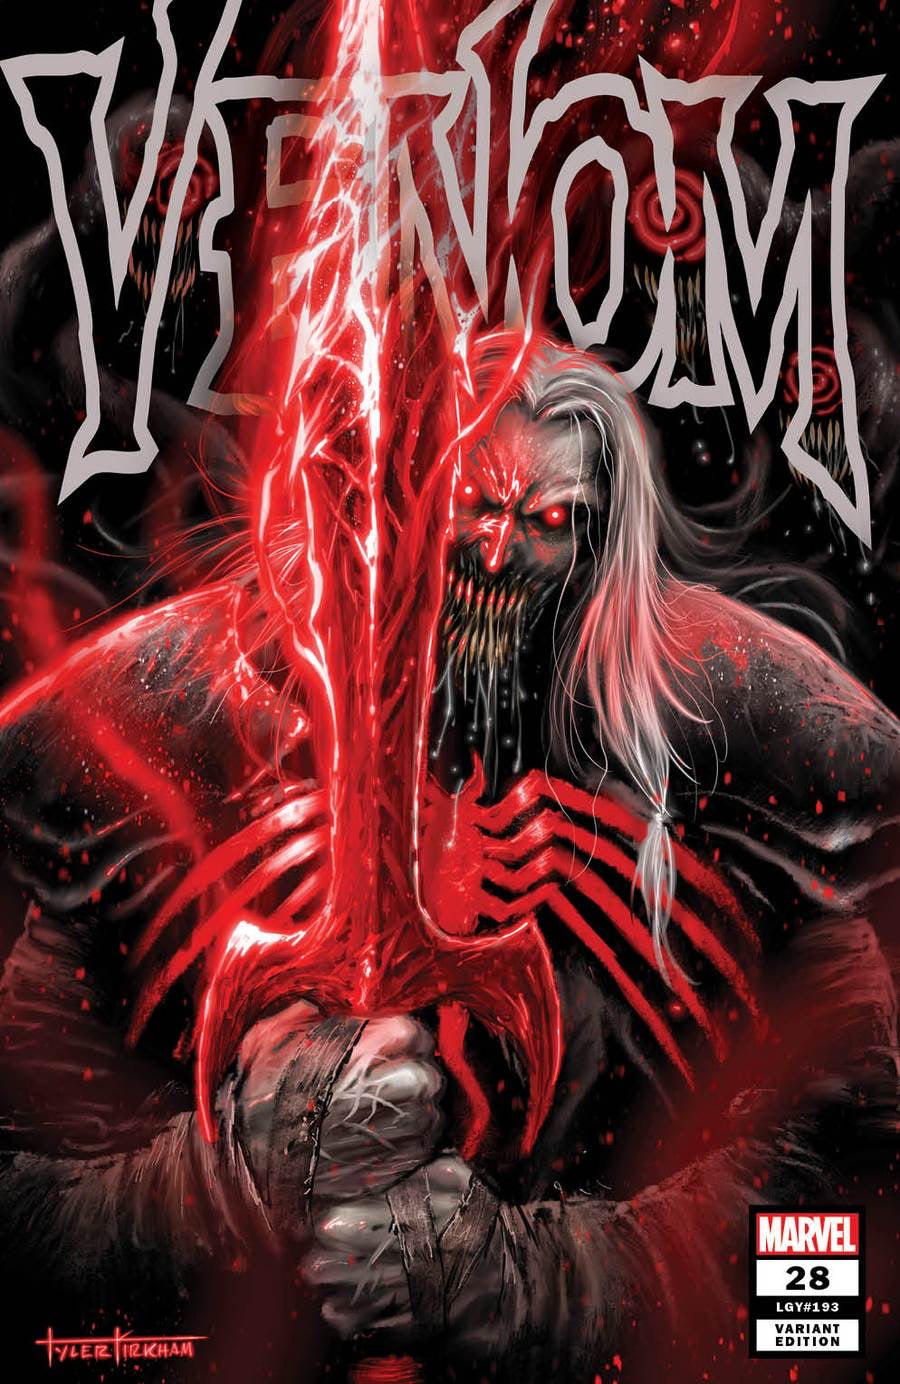 VENOM #28 TYLER KIRKHAM Exclusive Trade Dress Variant